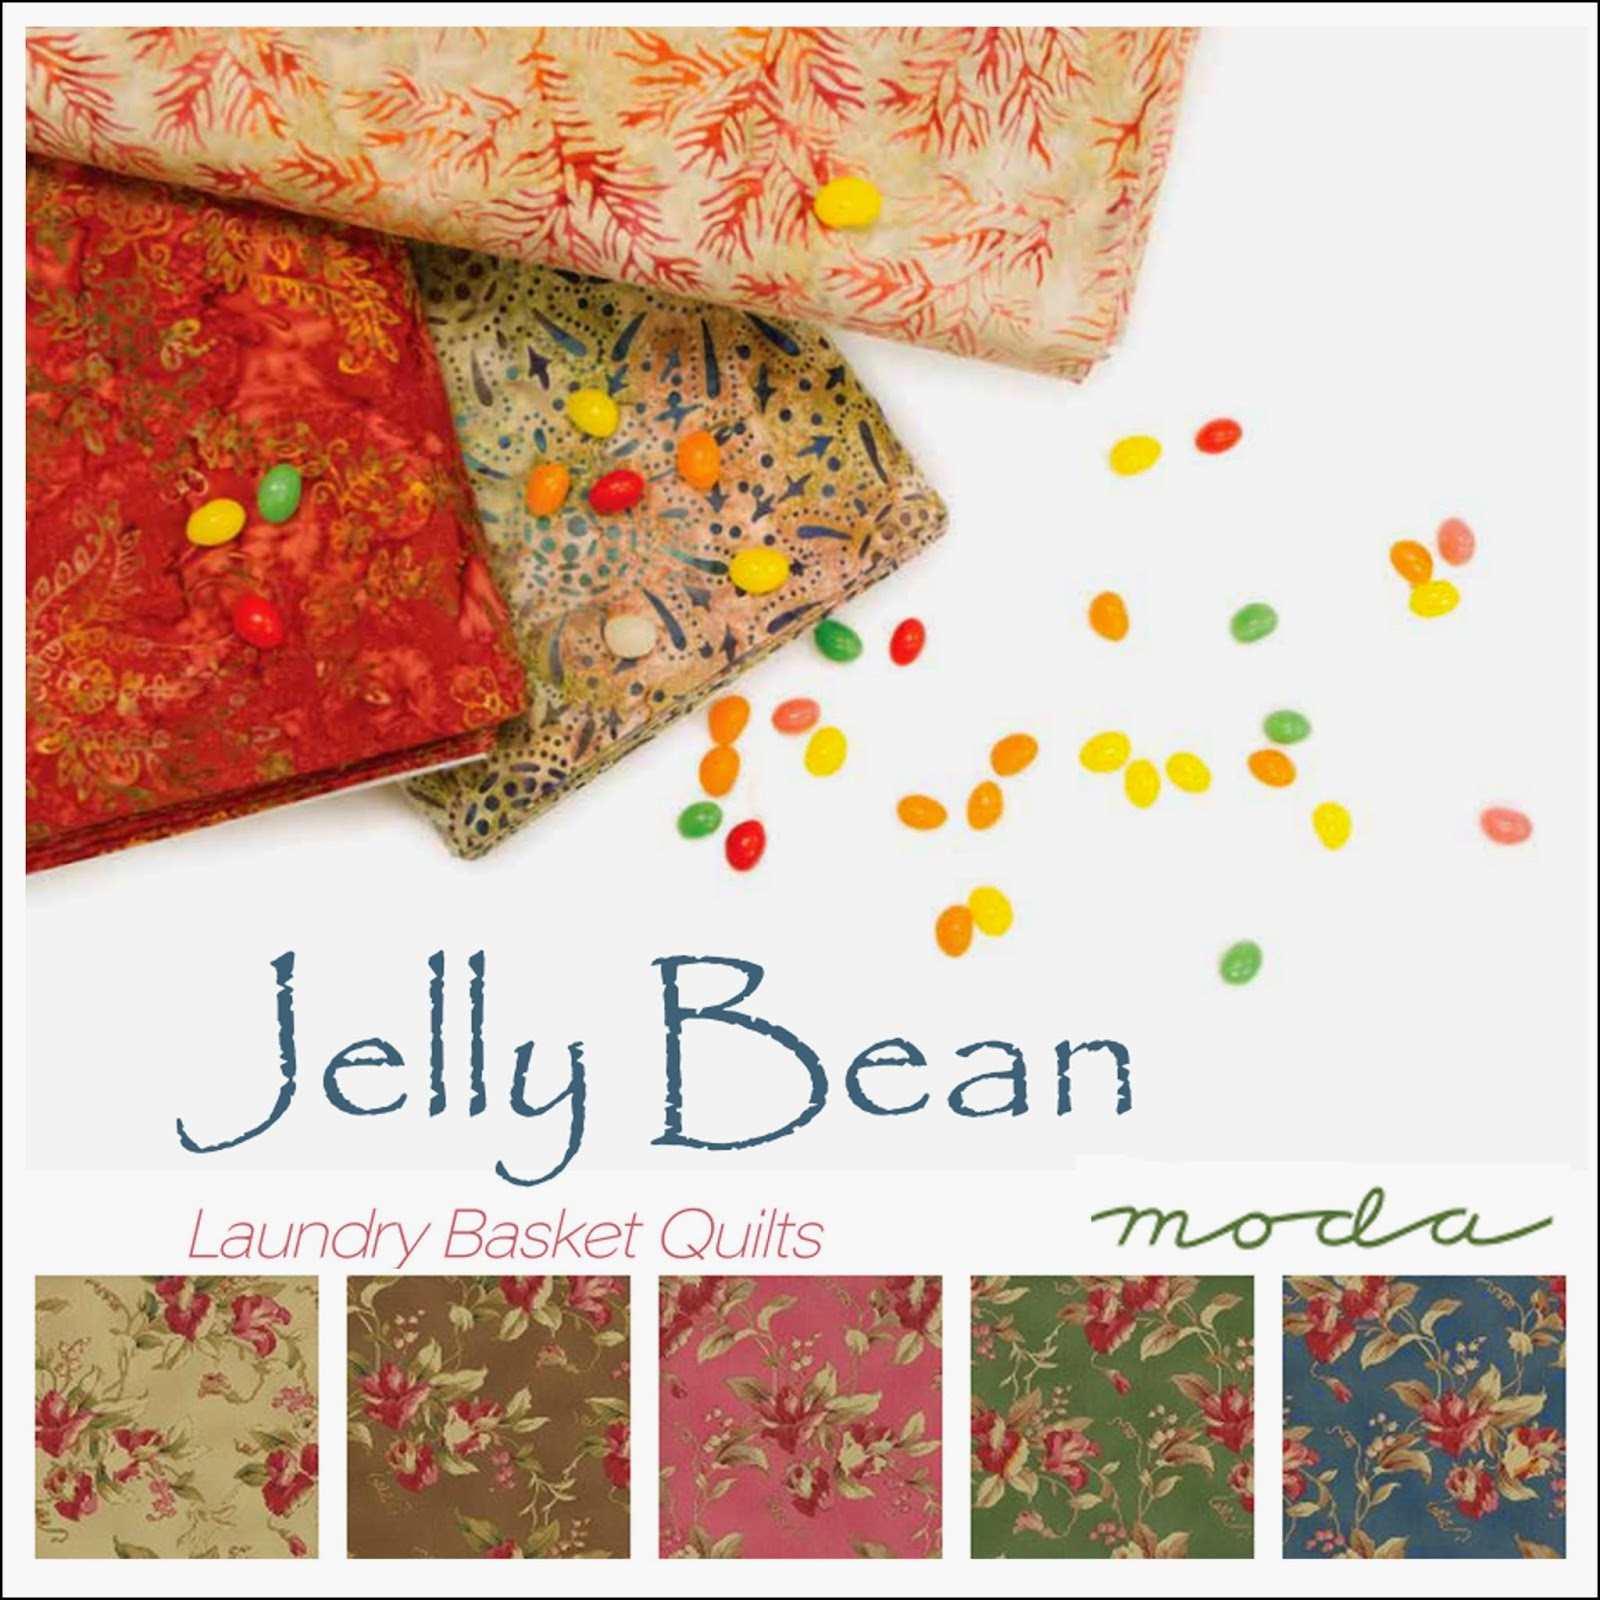 Moda JELLY BEAN Prints and Batiks Quilt Fabric by Edyta Sitar of Laundry Basket Quilts